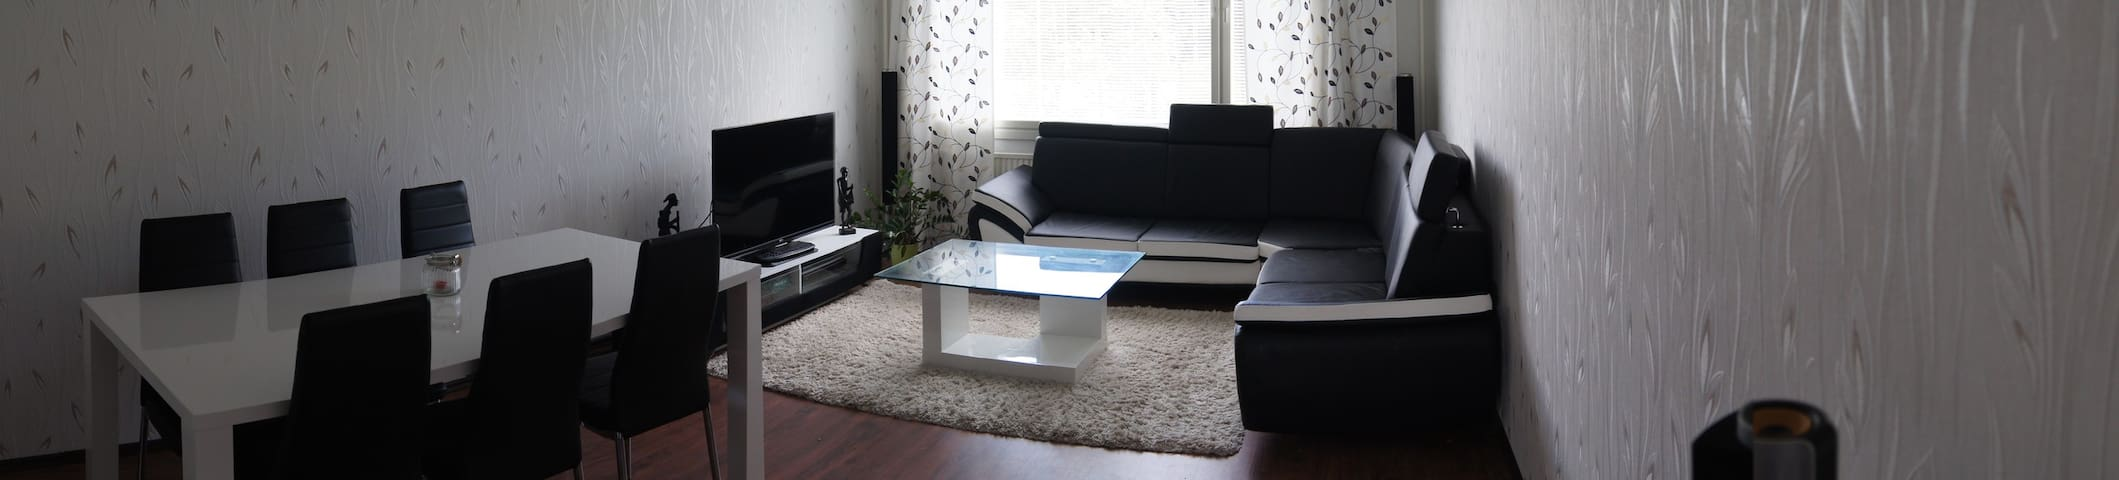 Spacious and comfy apartment full of light! - Åbo - Apartment